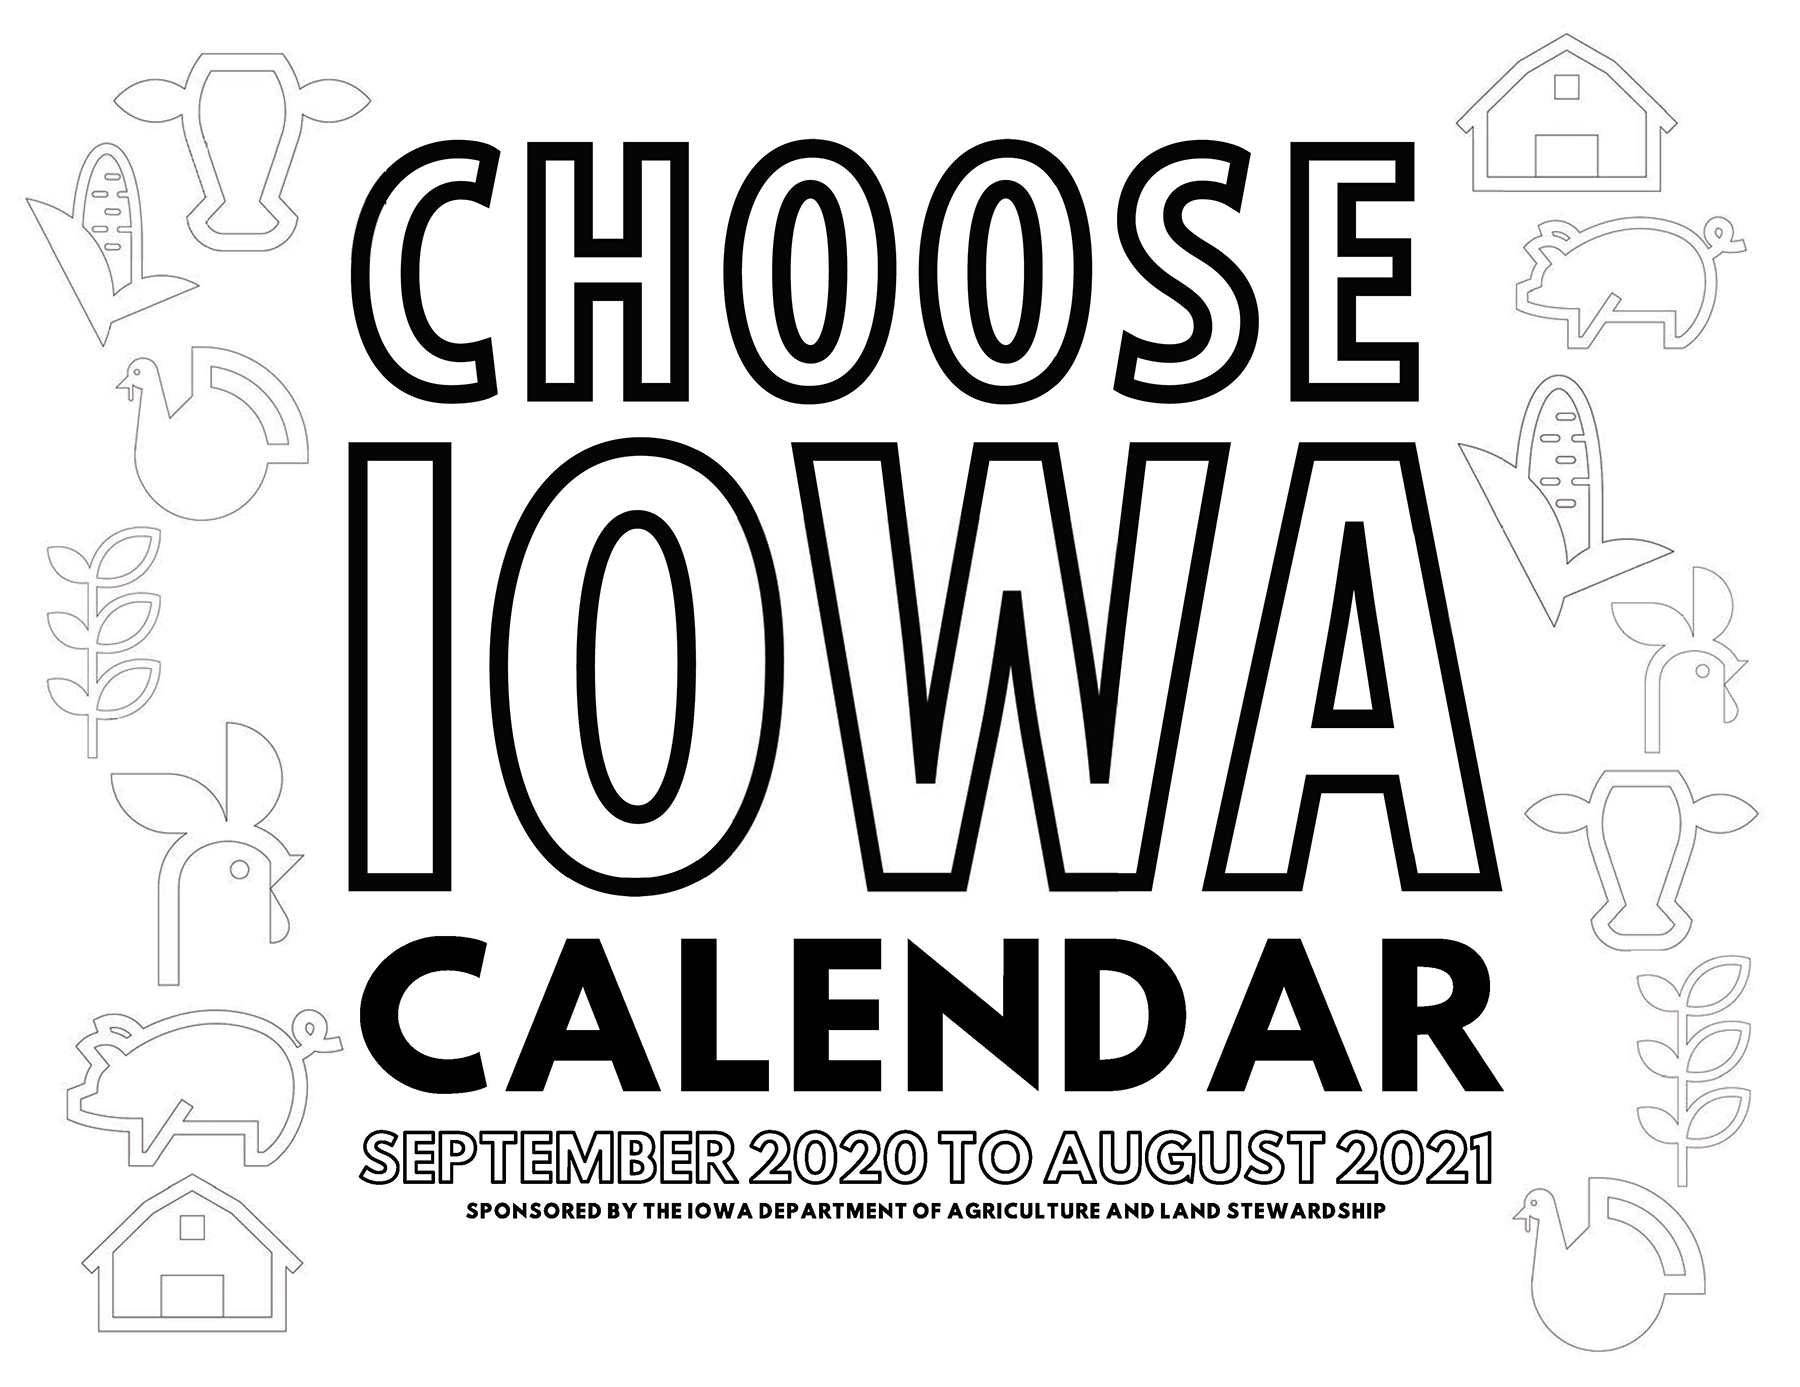 Secretary Naig Announces 2020 Choose Iowa Calendar Contest With Regard To Des Moines Calendar Of Events 2021